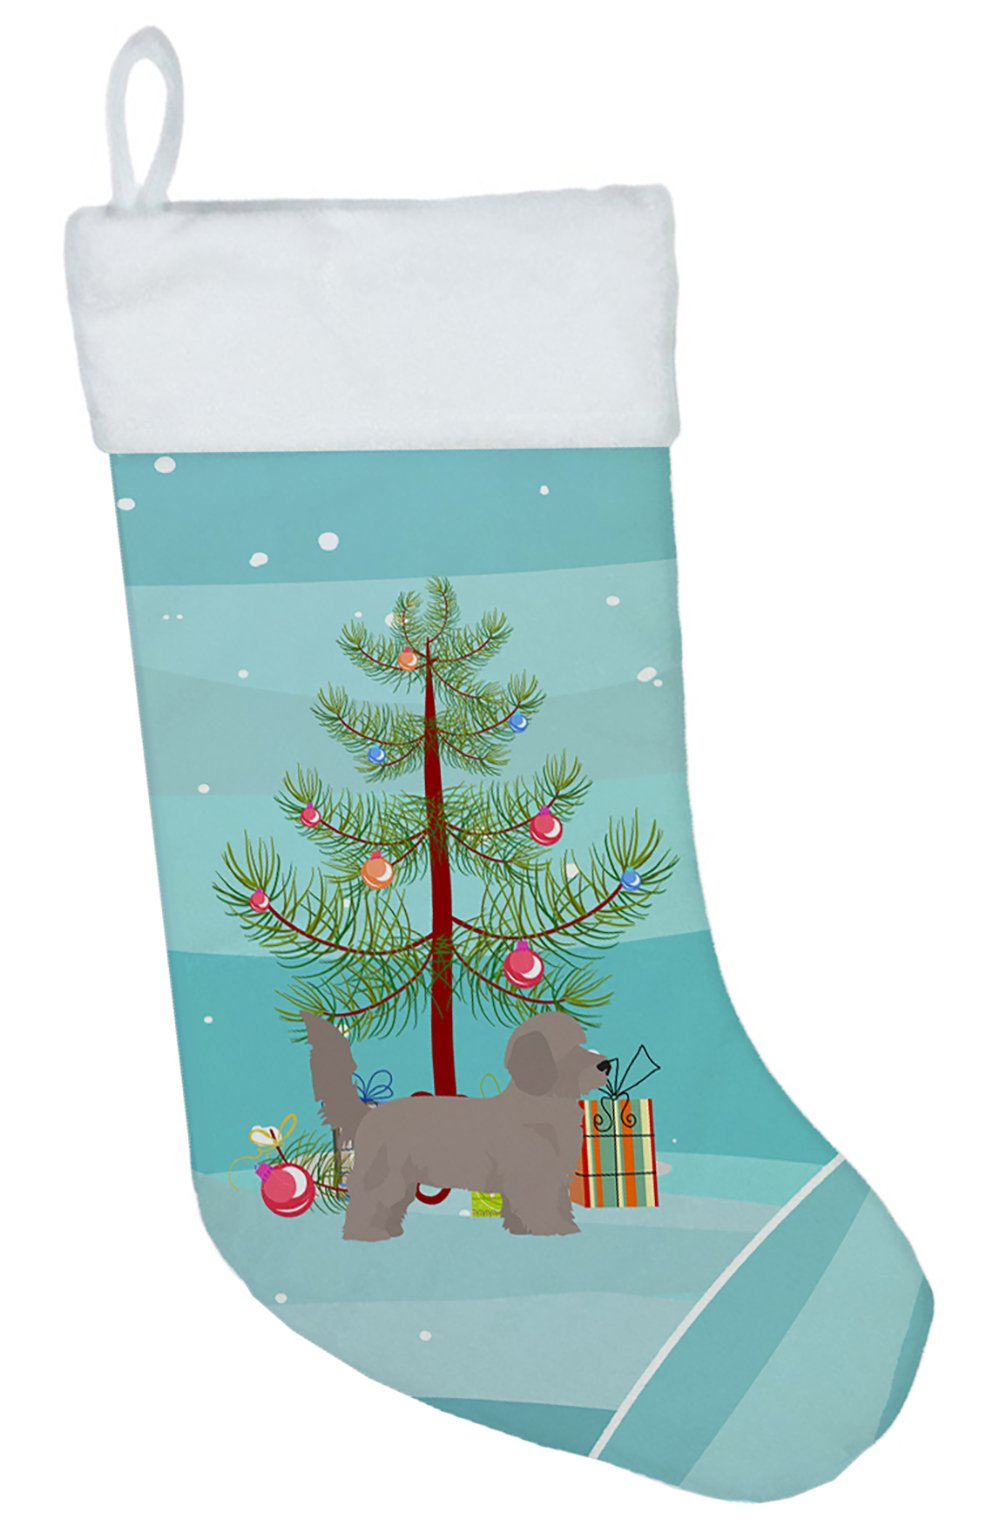 Doxiepoo Christmas Tree Christmas Stocking CK3826CS by Caroline's Treasures